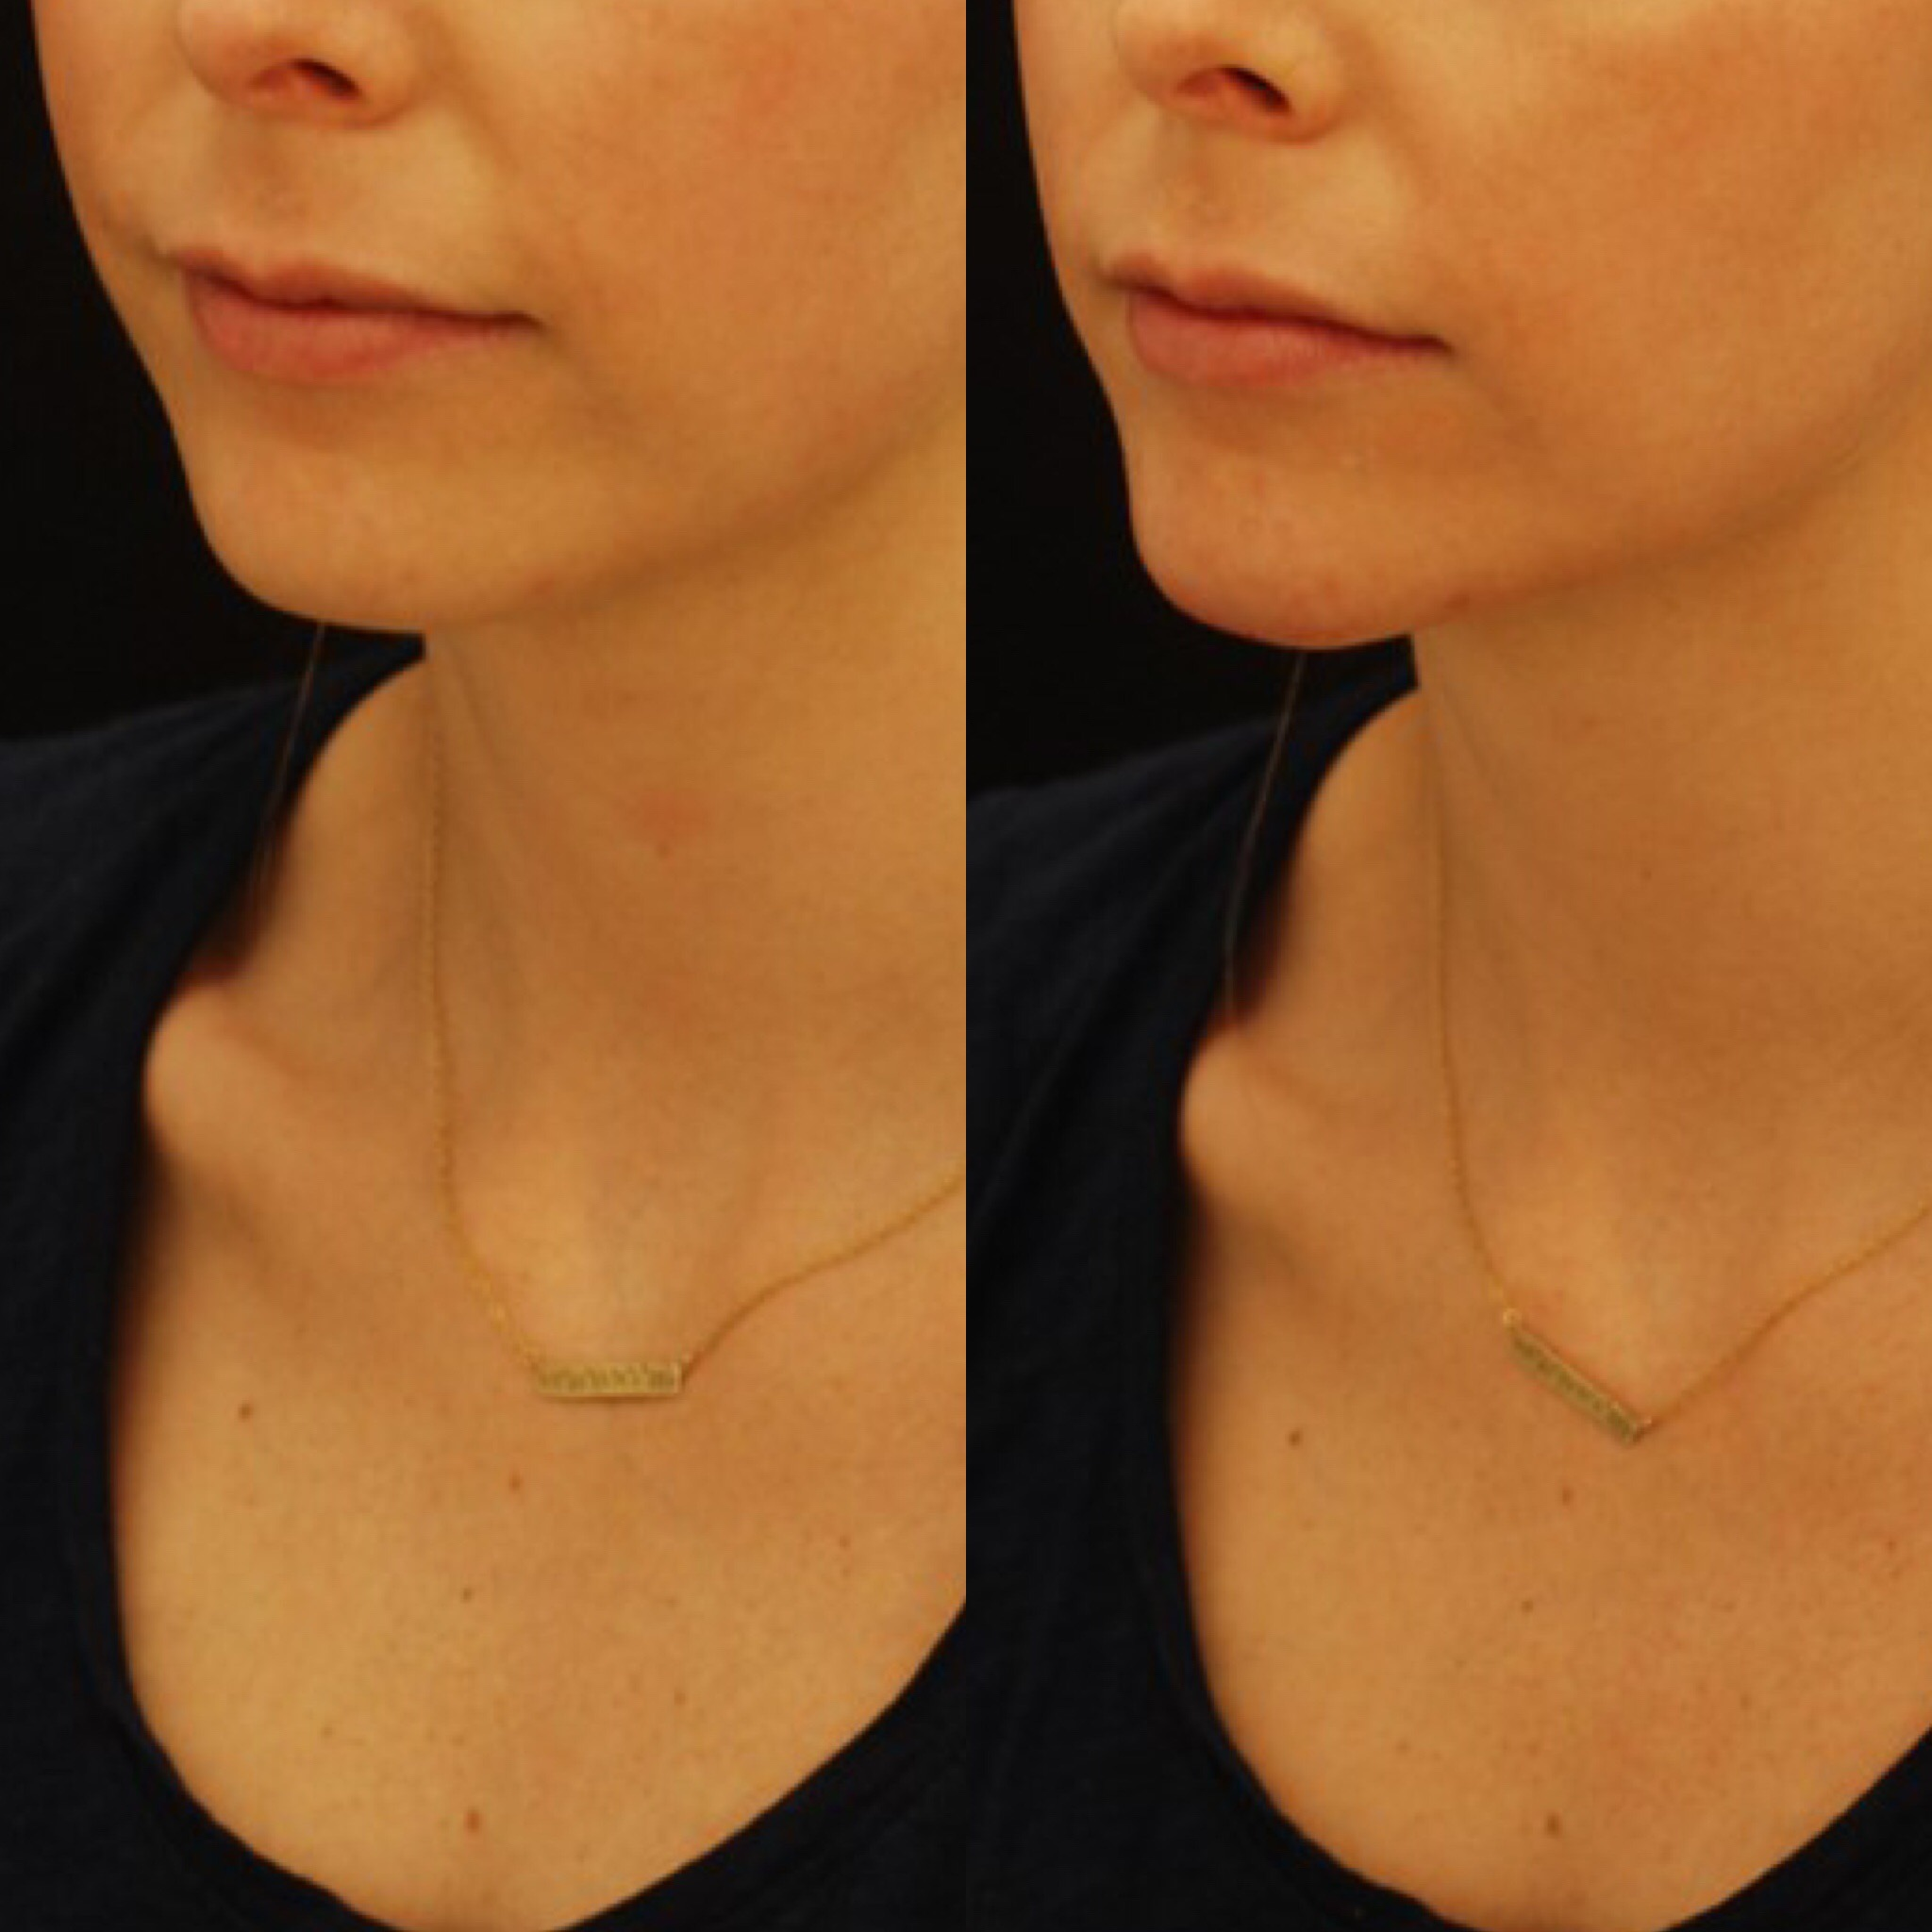 Actual patient of Dr. Devgan, before and after chin augmentation to lengthen a rounded face and strengthen the profile.